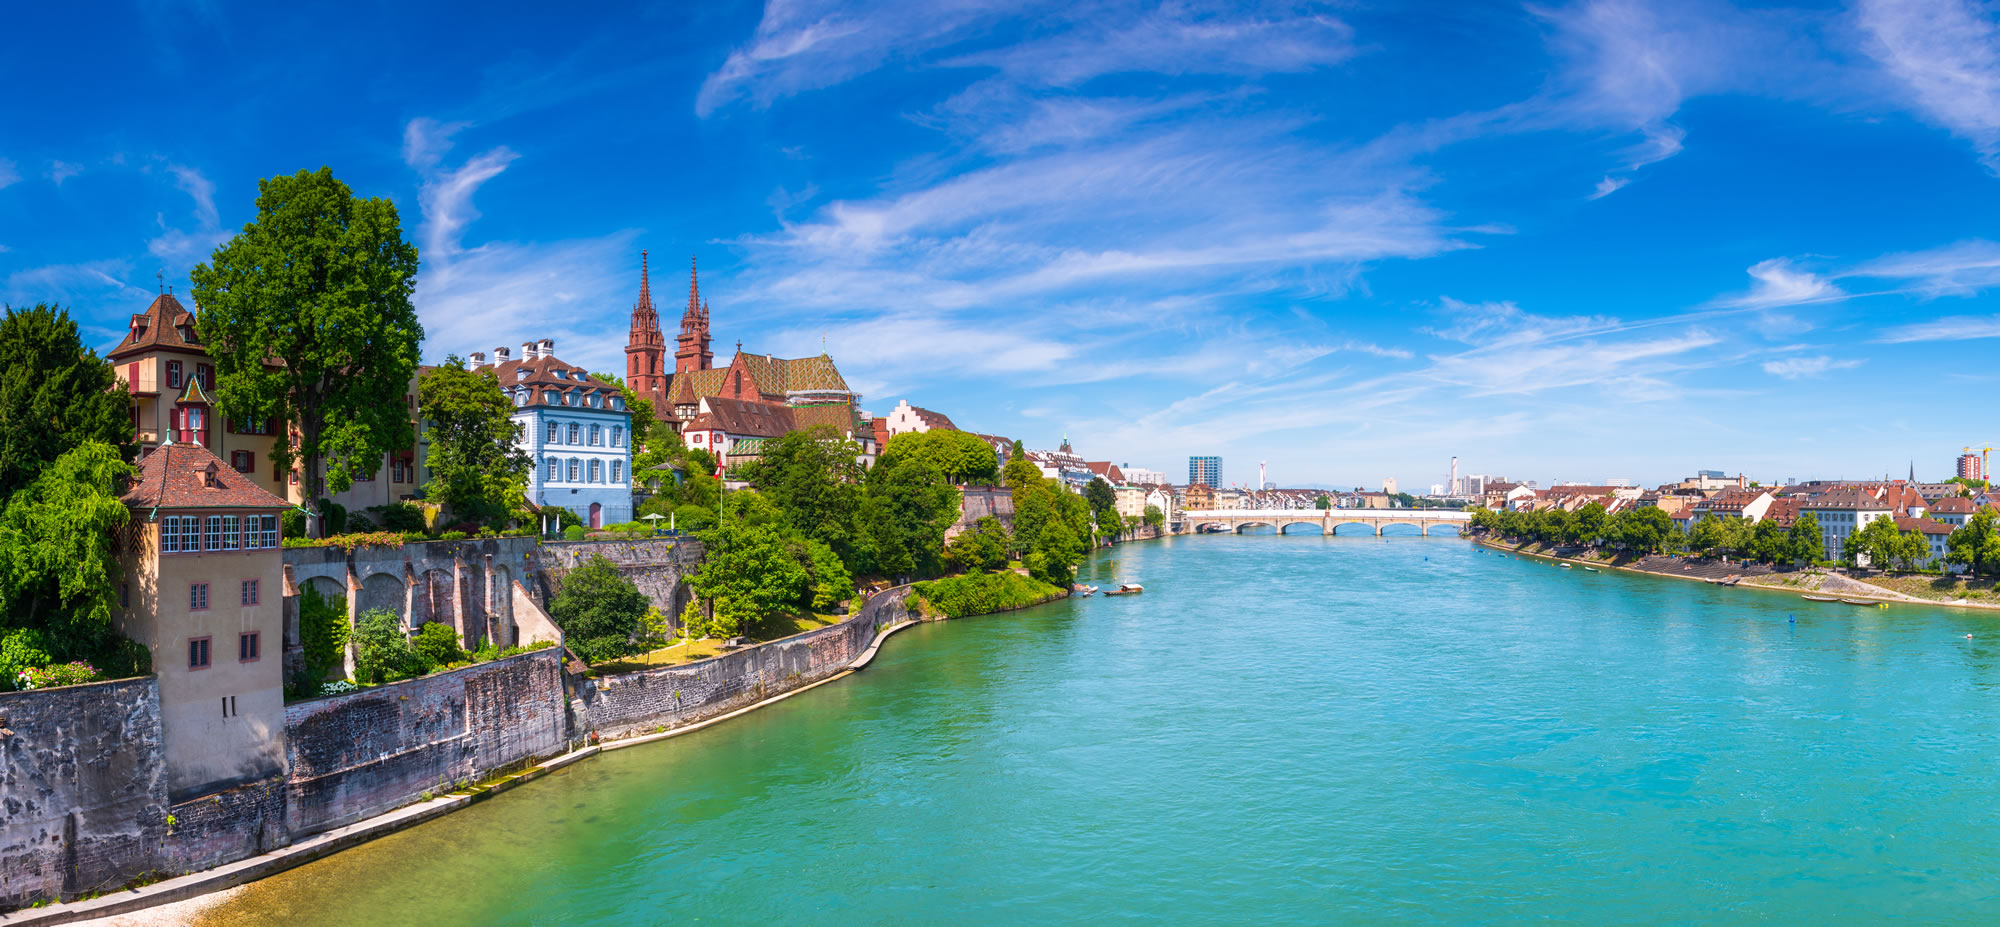 Rhine River, Switzerland